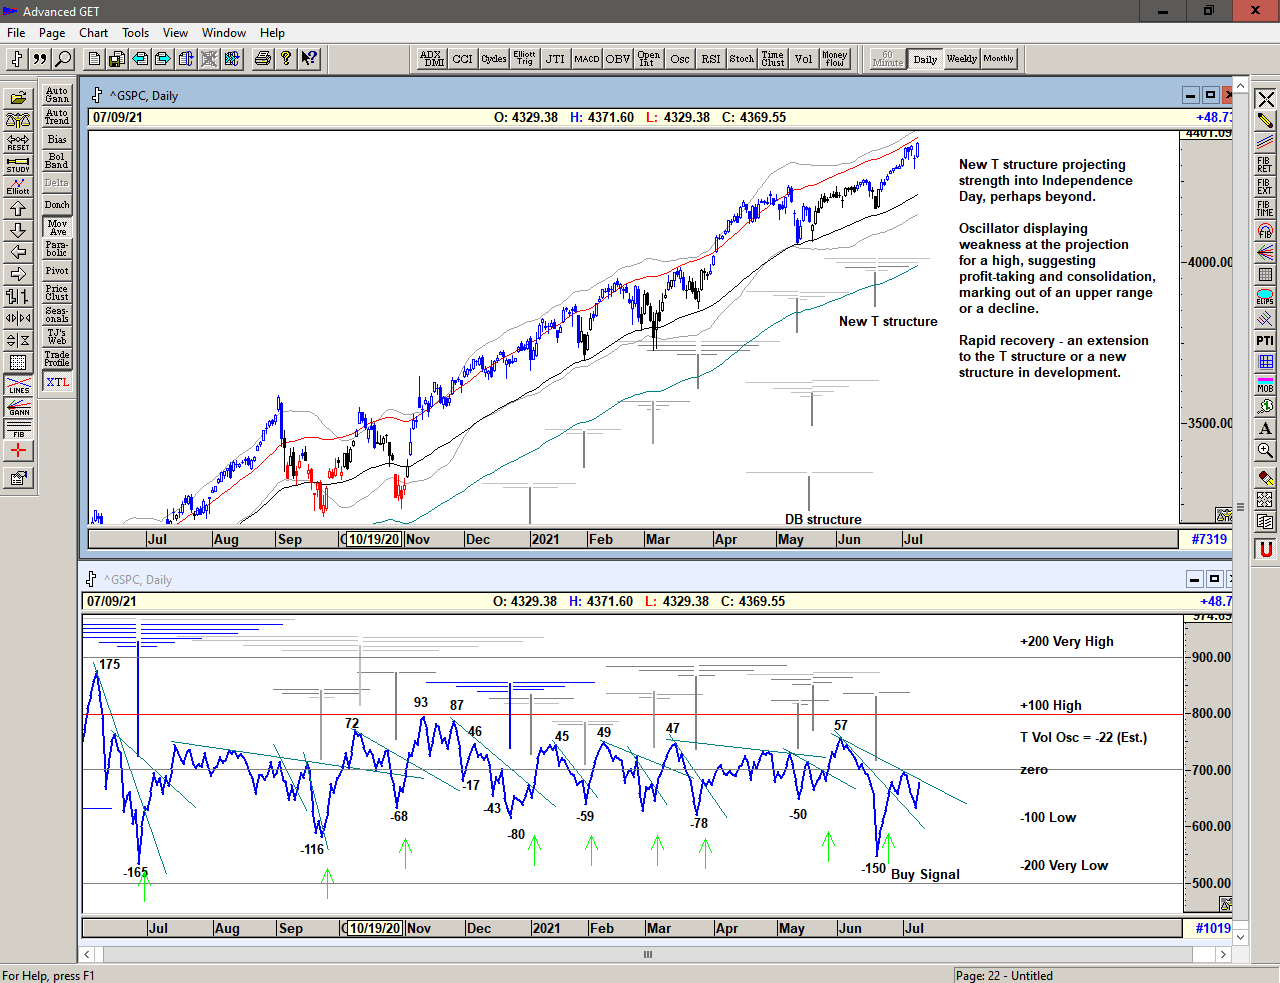 Chart of S&P 500 with T volume oscillator for 12 July 2021